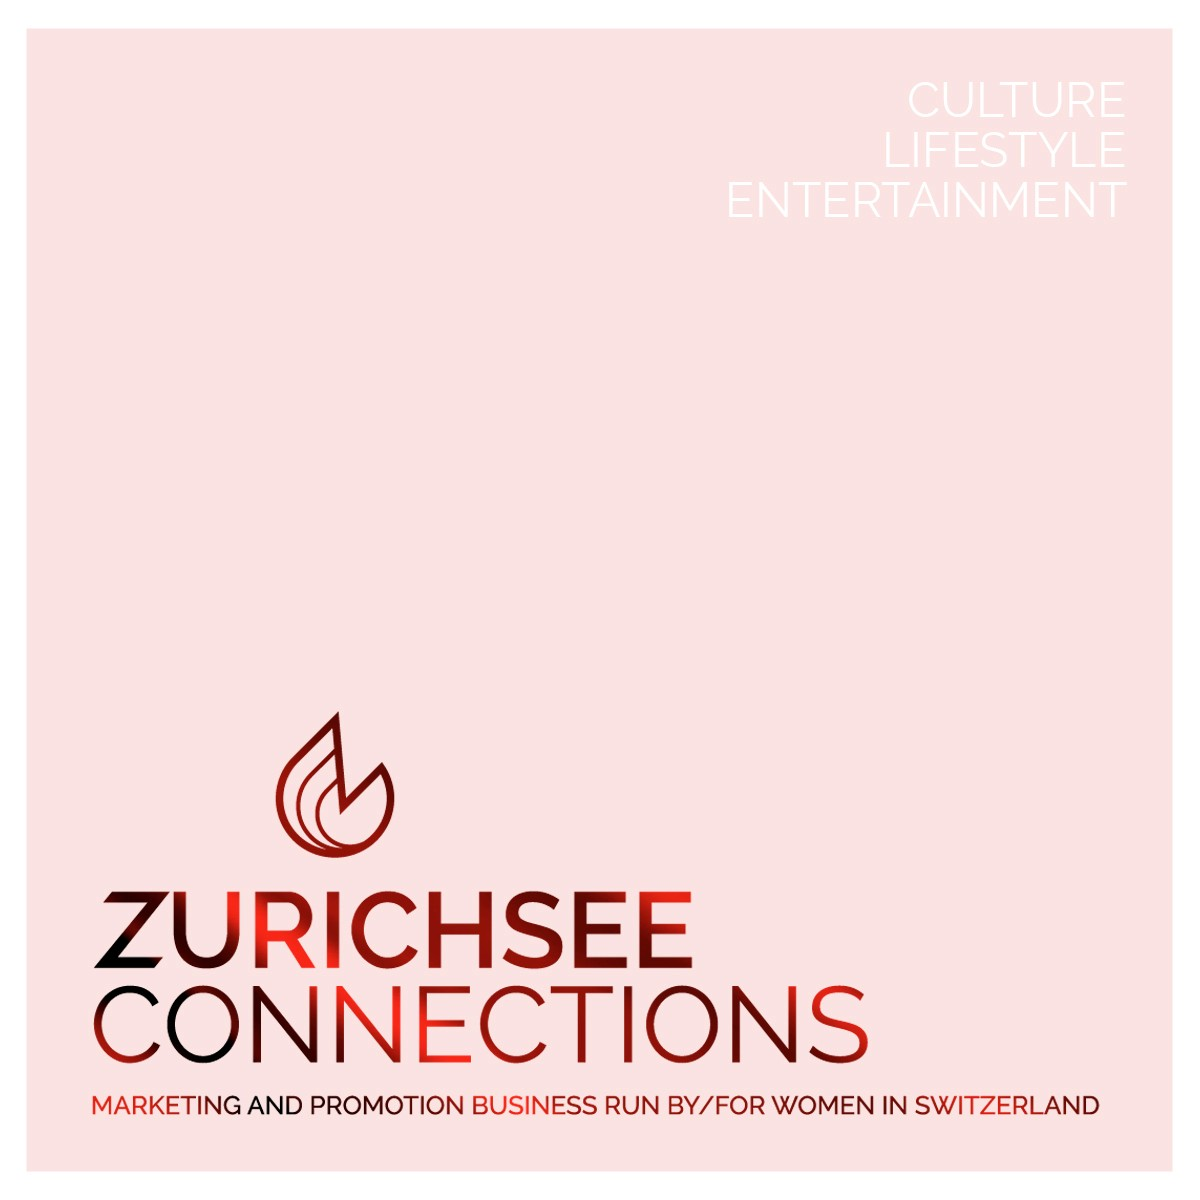 Zurichsee Connections Brand Beauty and Lifestyle Social Booster